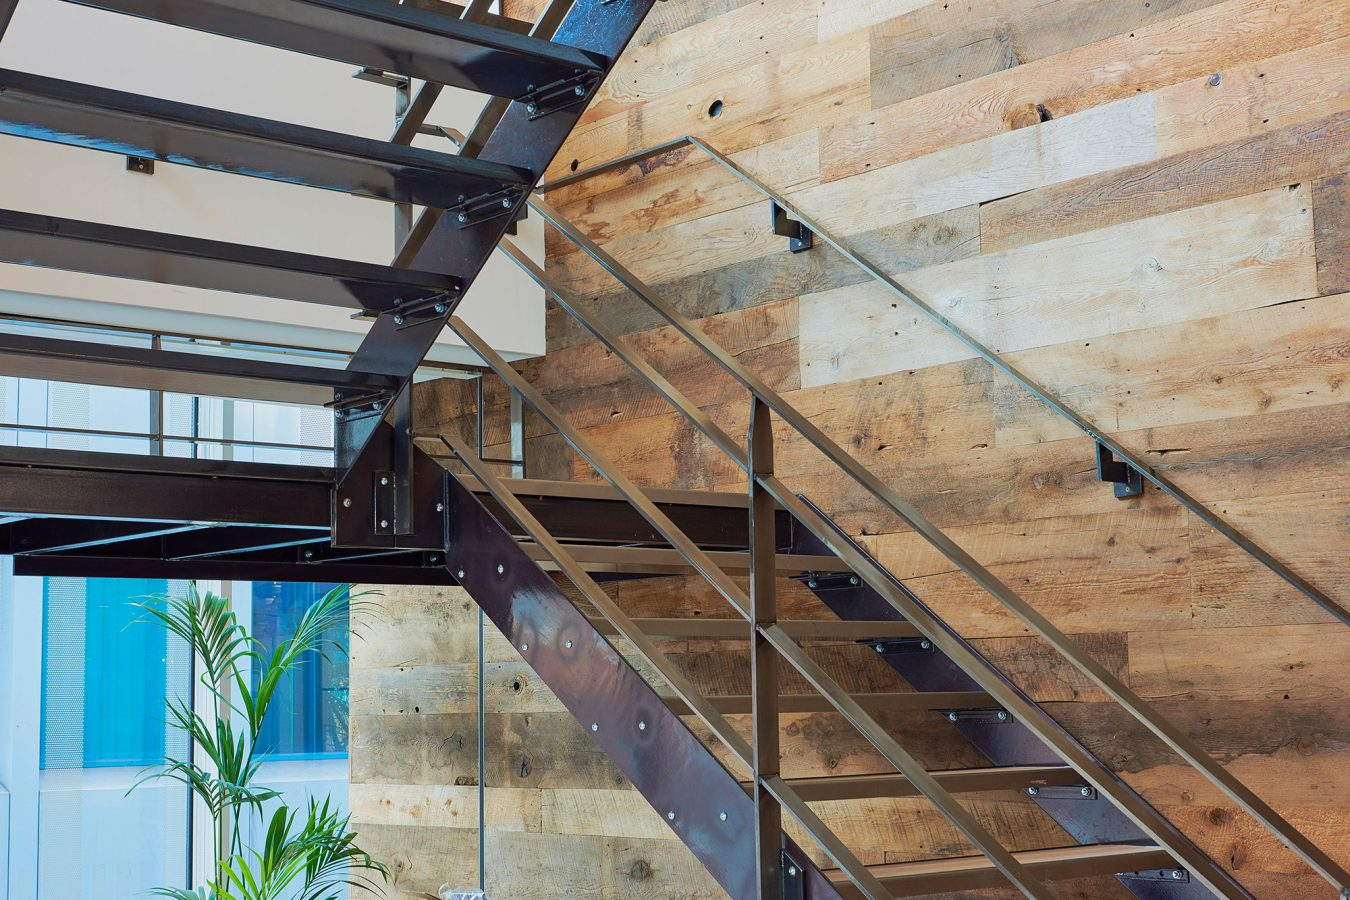 Timber staircase design, craftsmanship, metal handle, industrial office design, fit out, refurbishment near London.